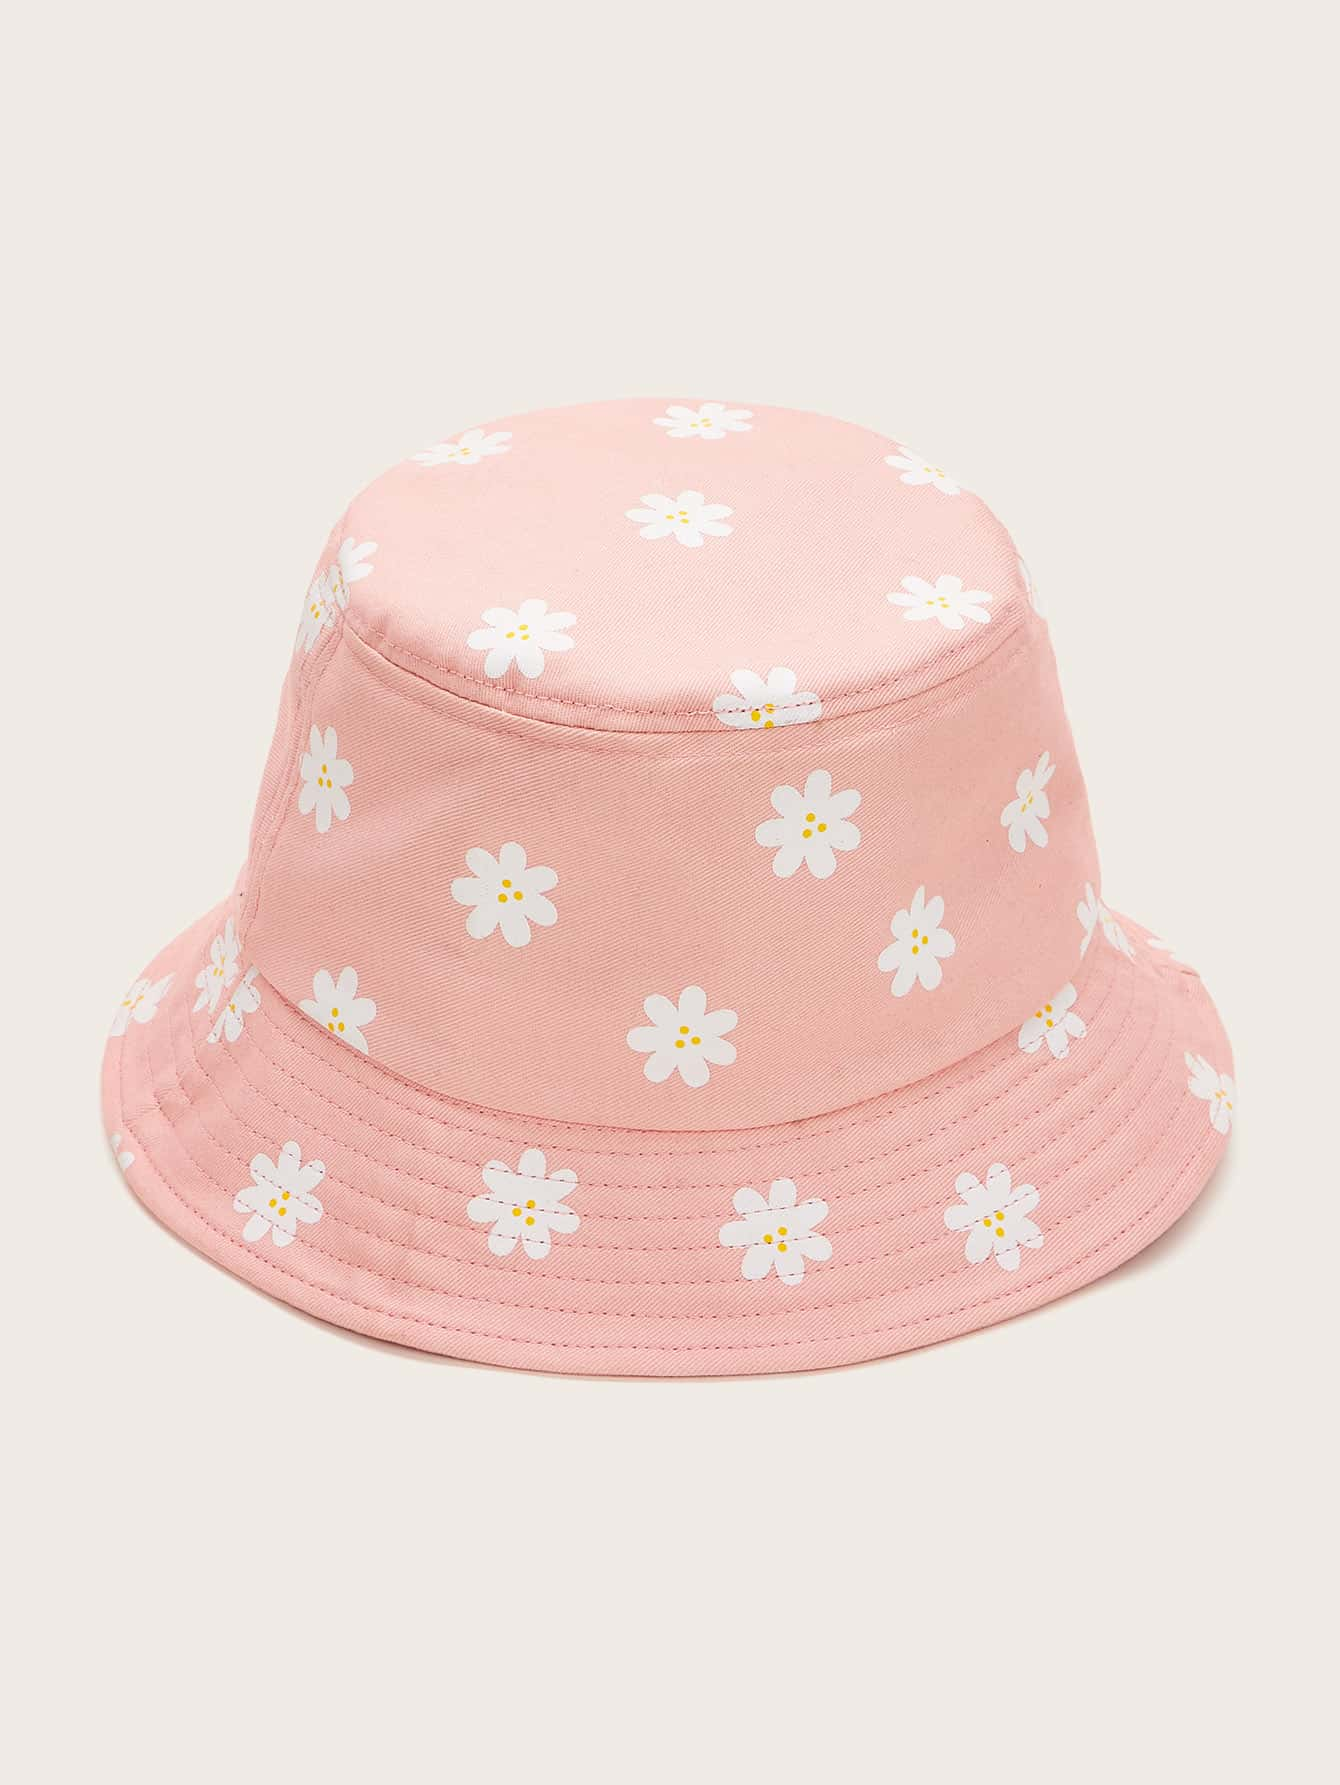 Floral Embroidery Bucket Hat Shein Eur